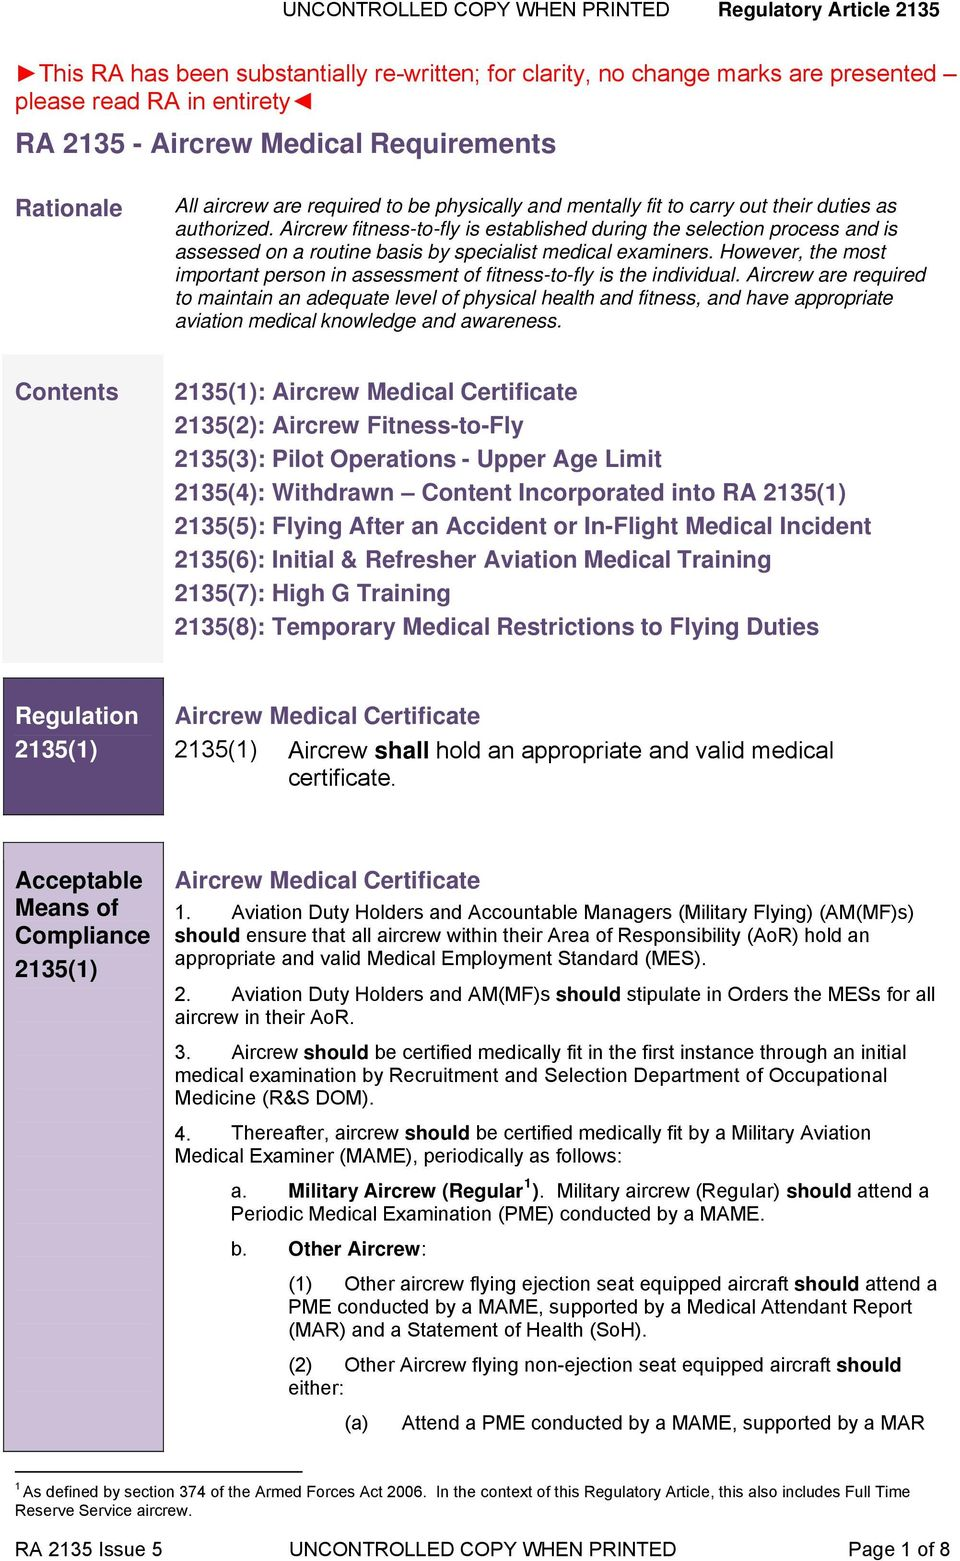 Ra Aircrew Medical Requirements Pdf